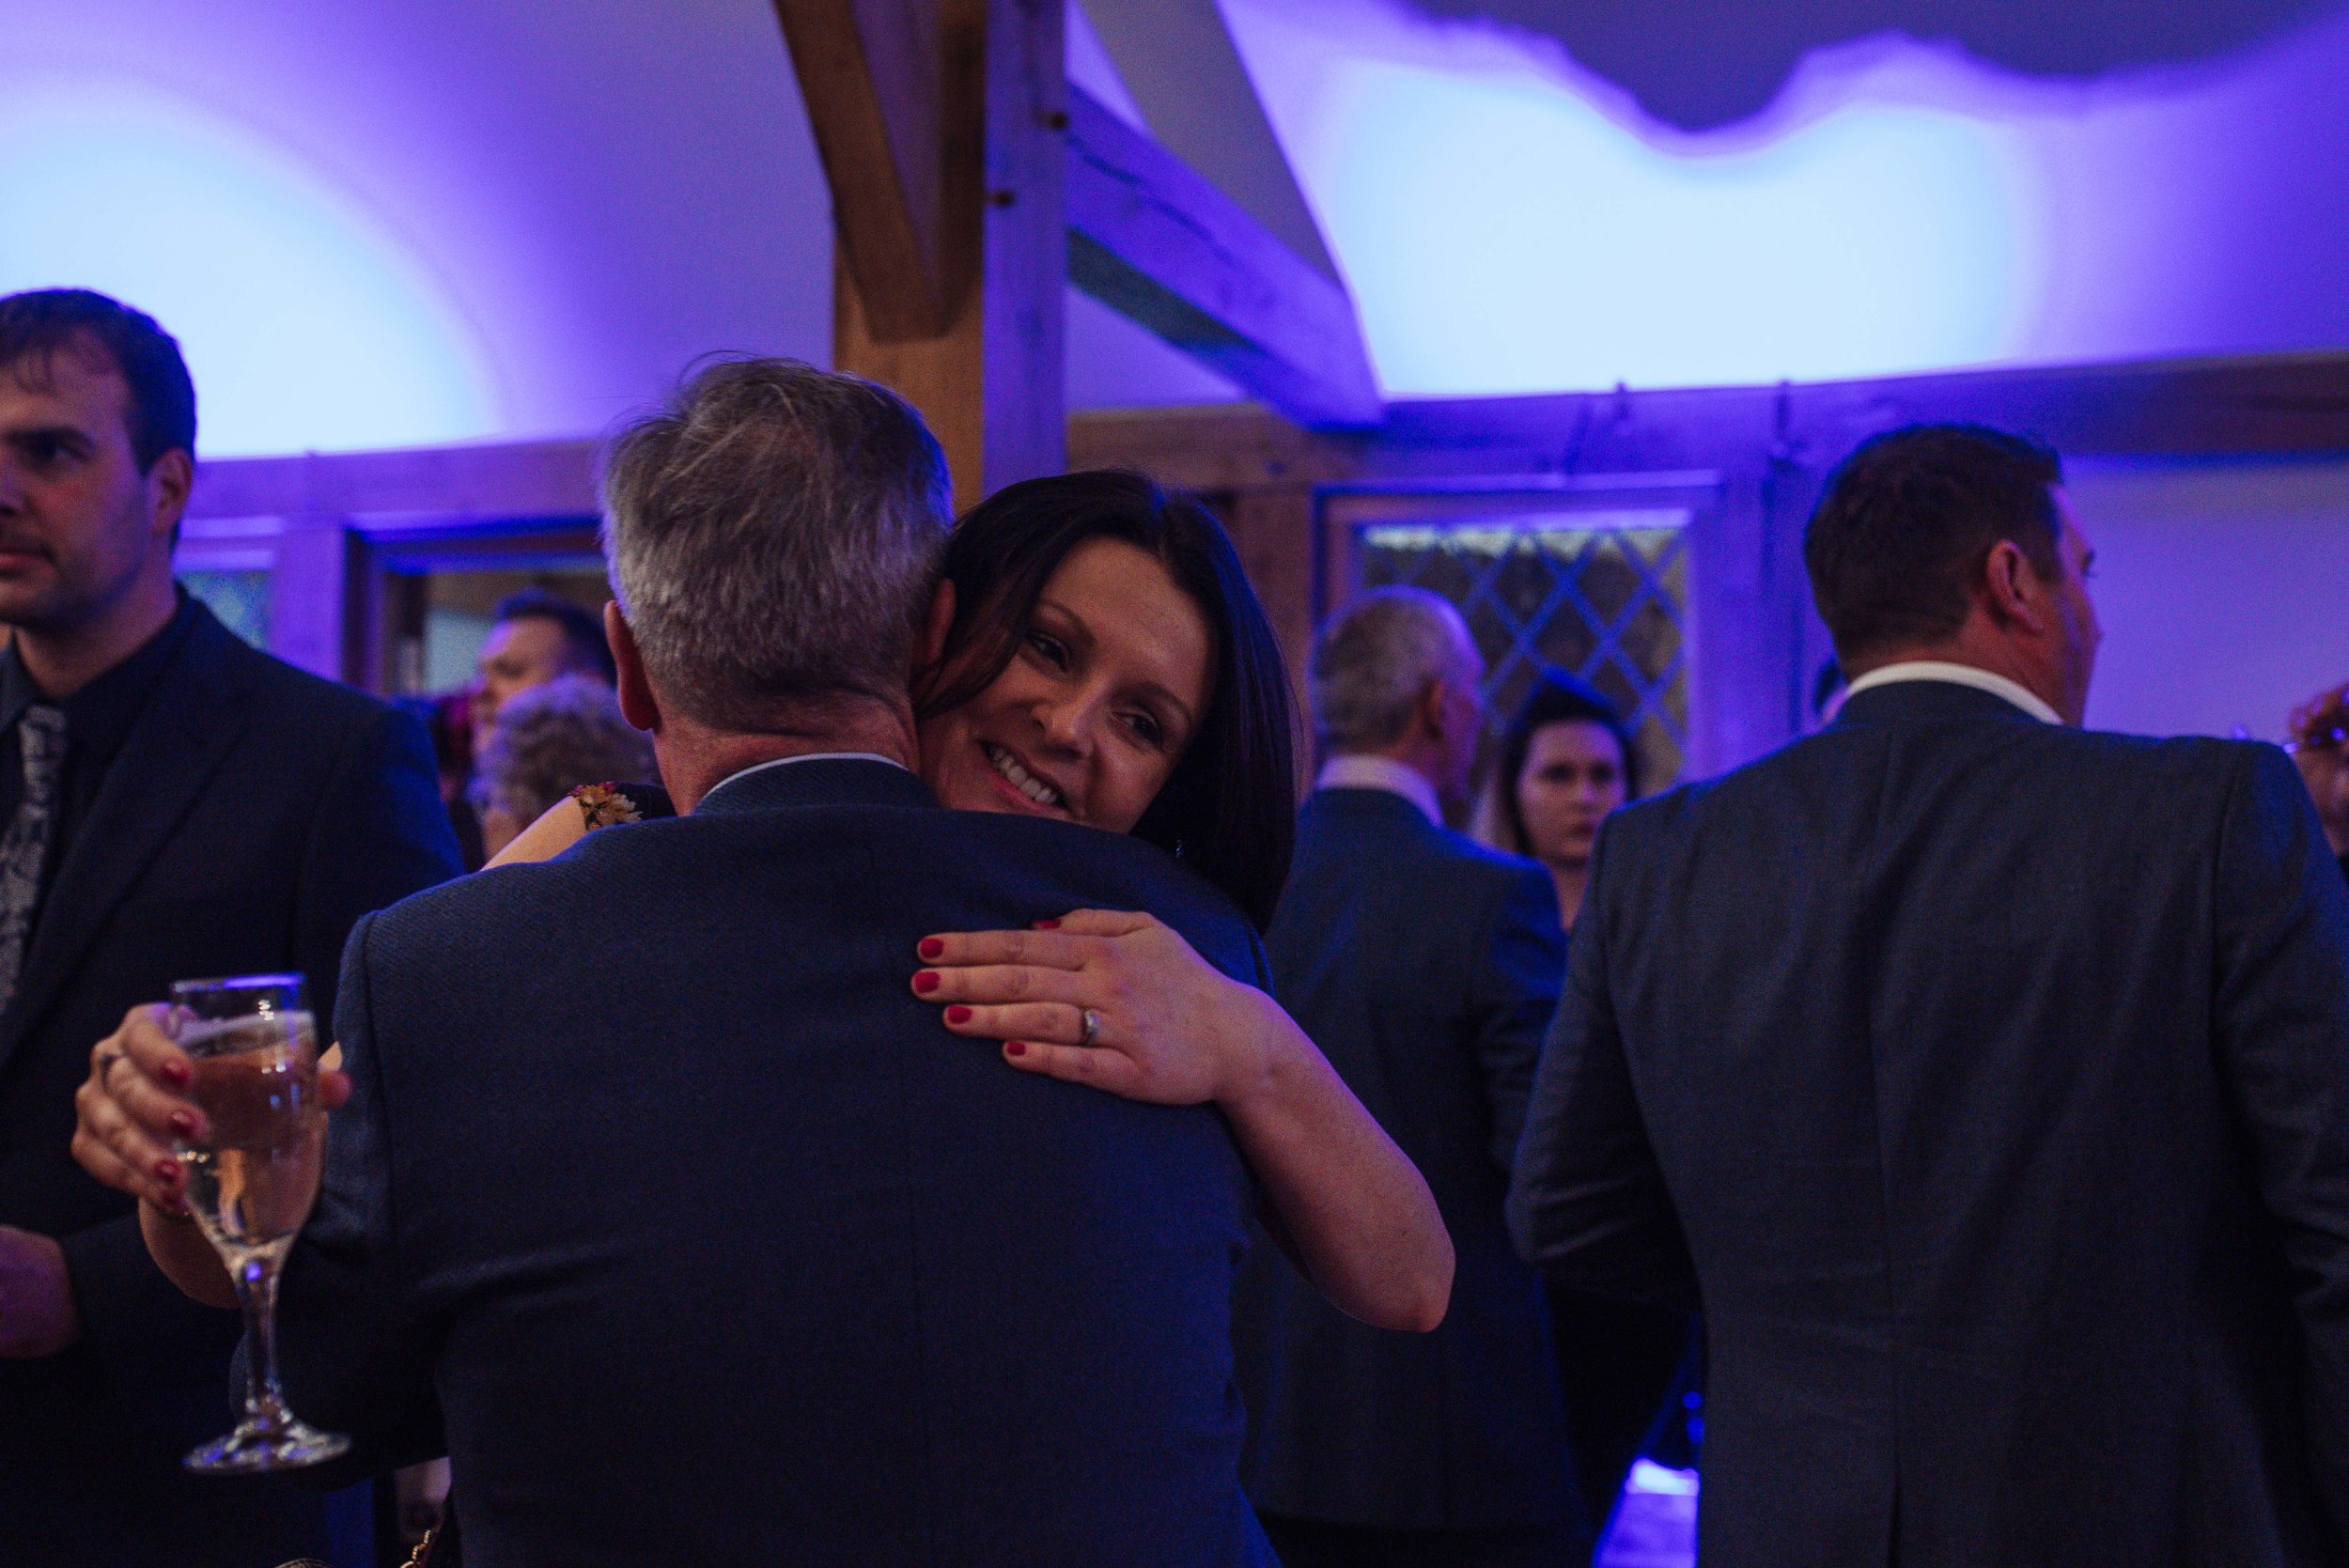 Two wedding guests hug each other